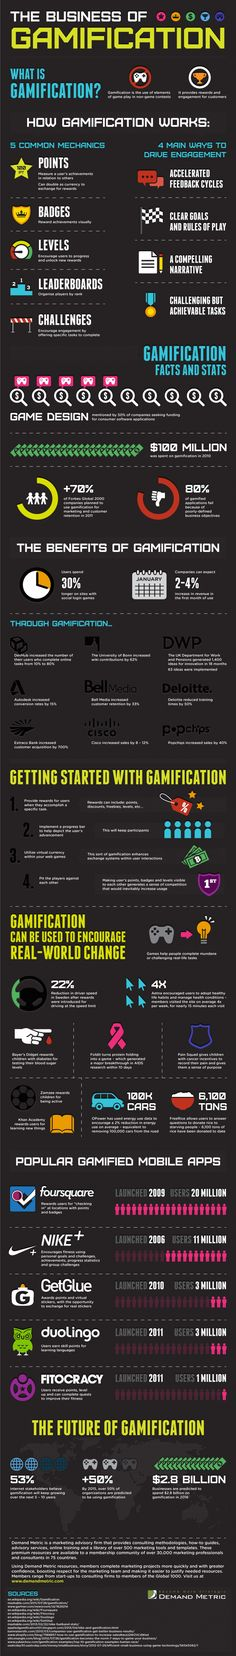 The Business of #Gamification